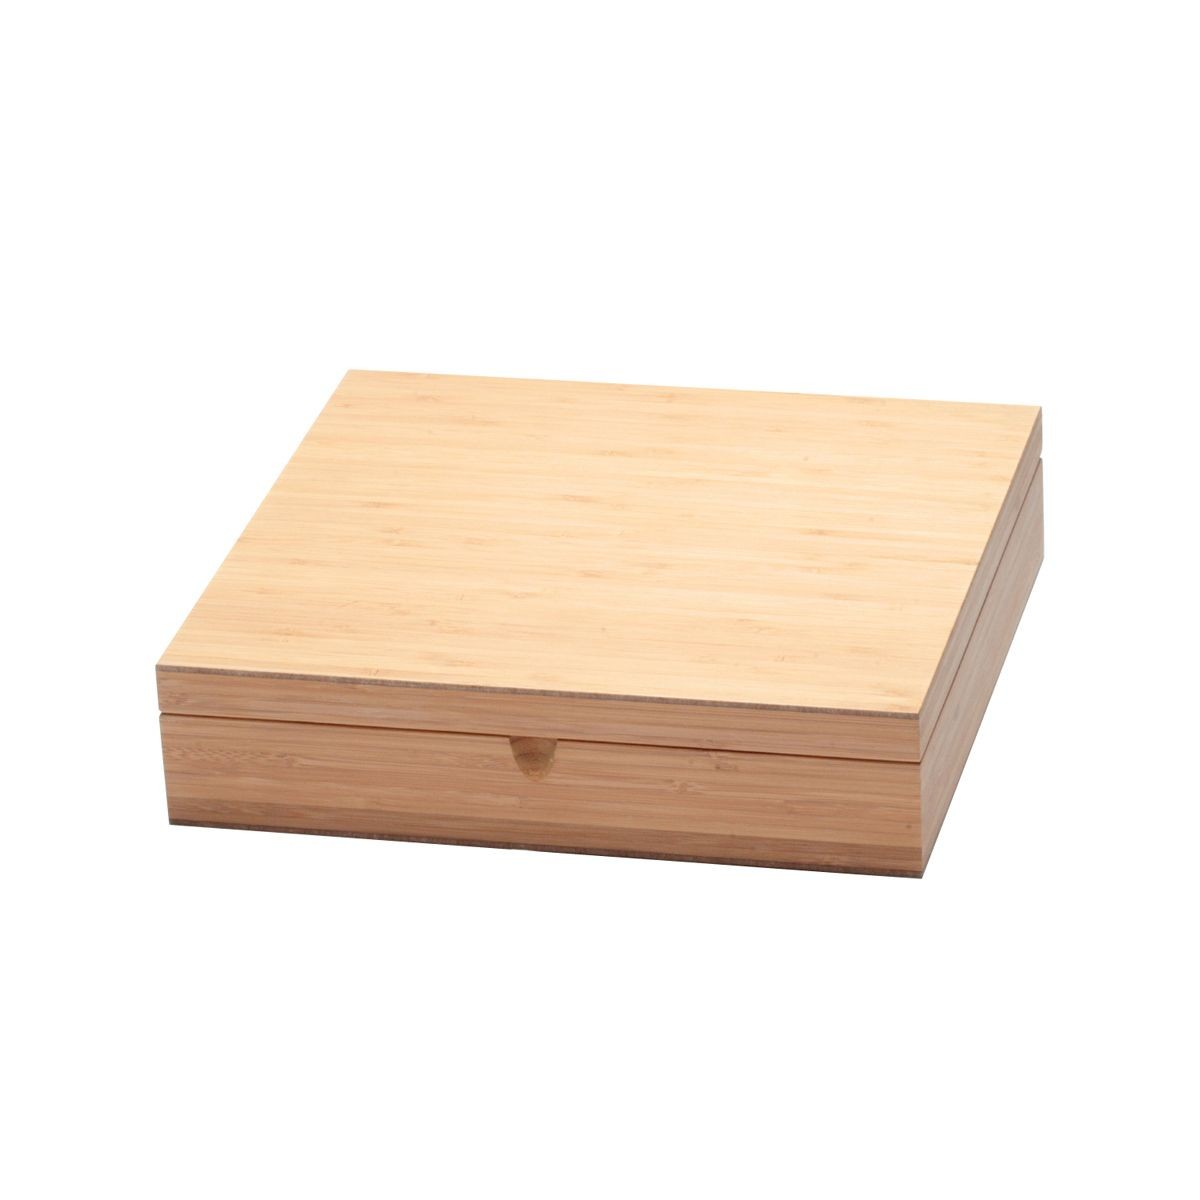 Service Ideas TBC12 Solid Bamboo Wood Tea Chest, 12 Compartments